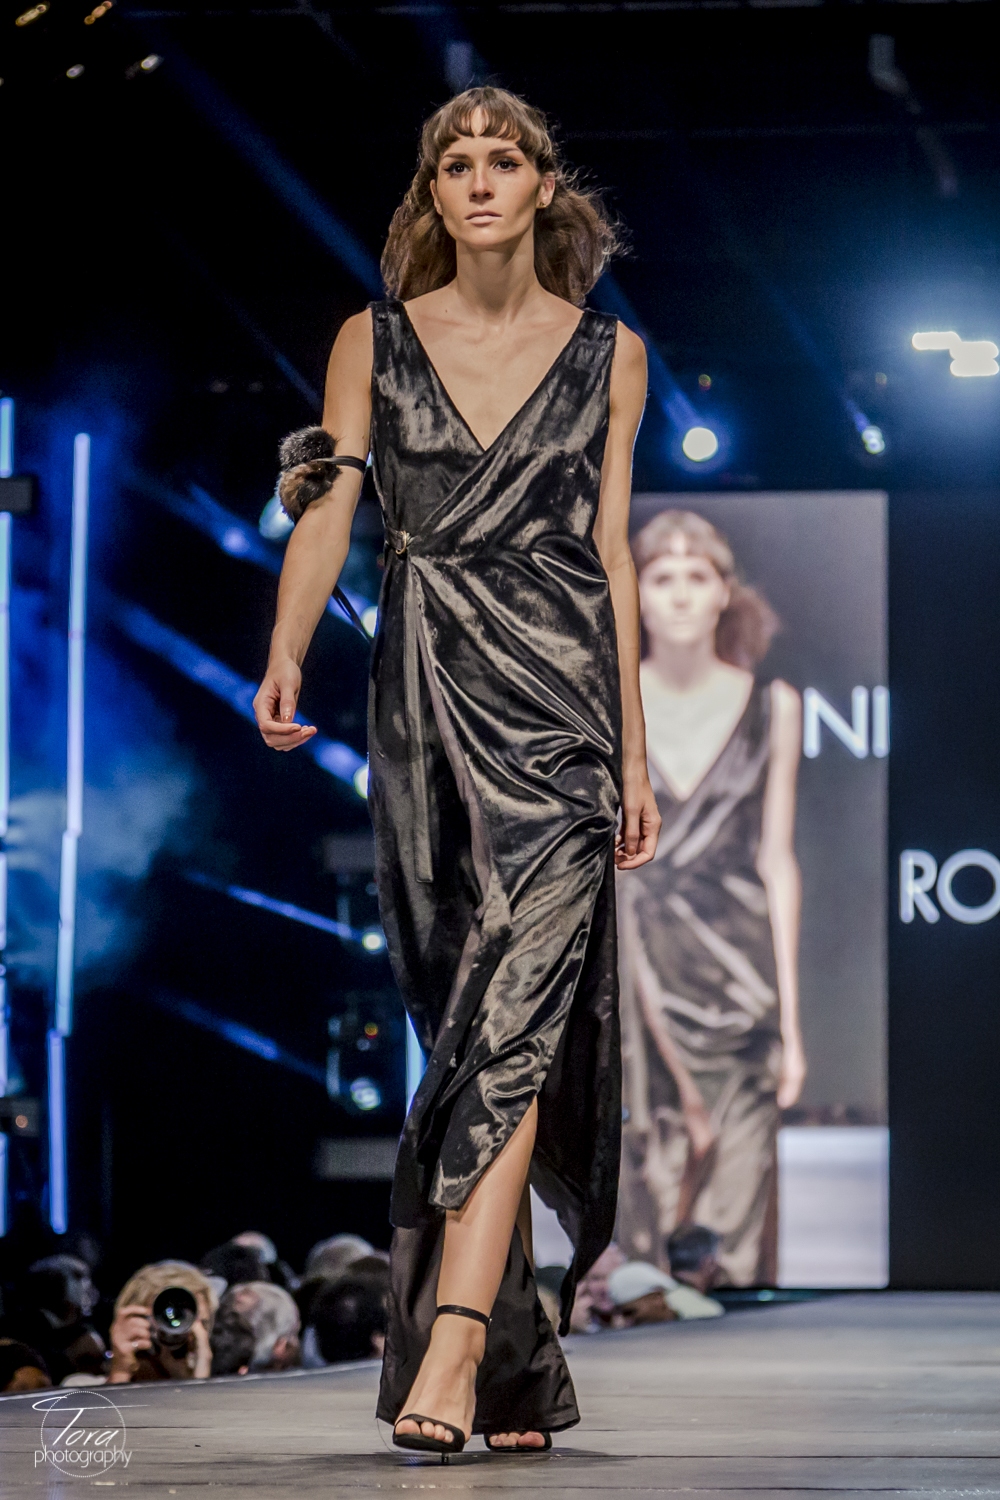 Tora Photography - Festival Mode et Design Montreal -135.jpg